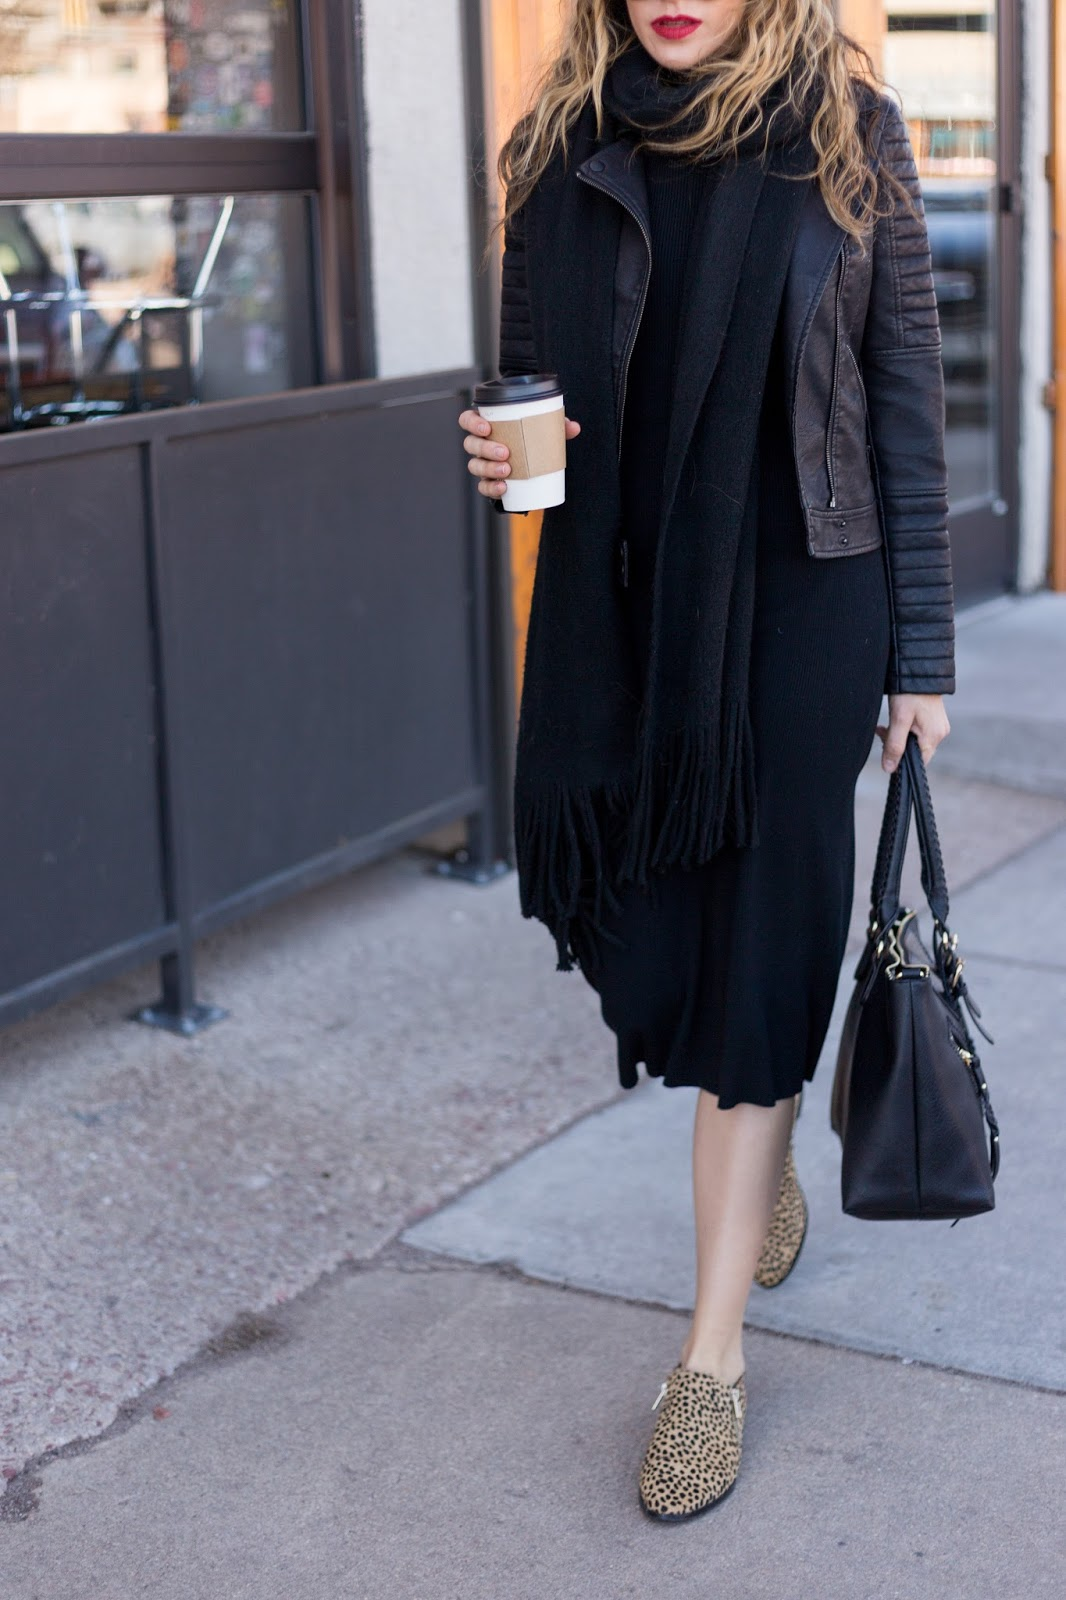 leather jacket with sweater dress and fringe scarf